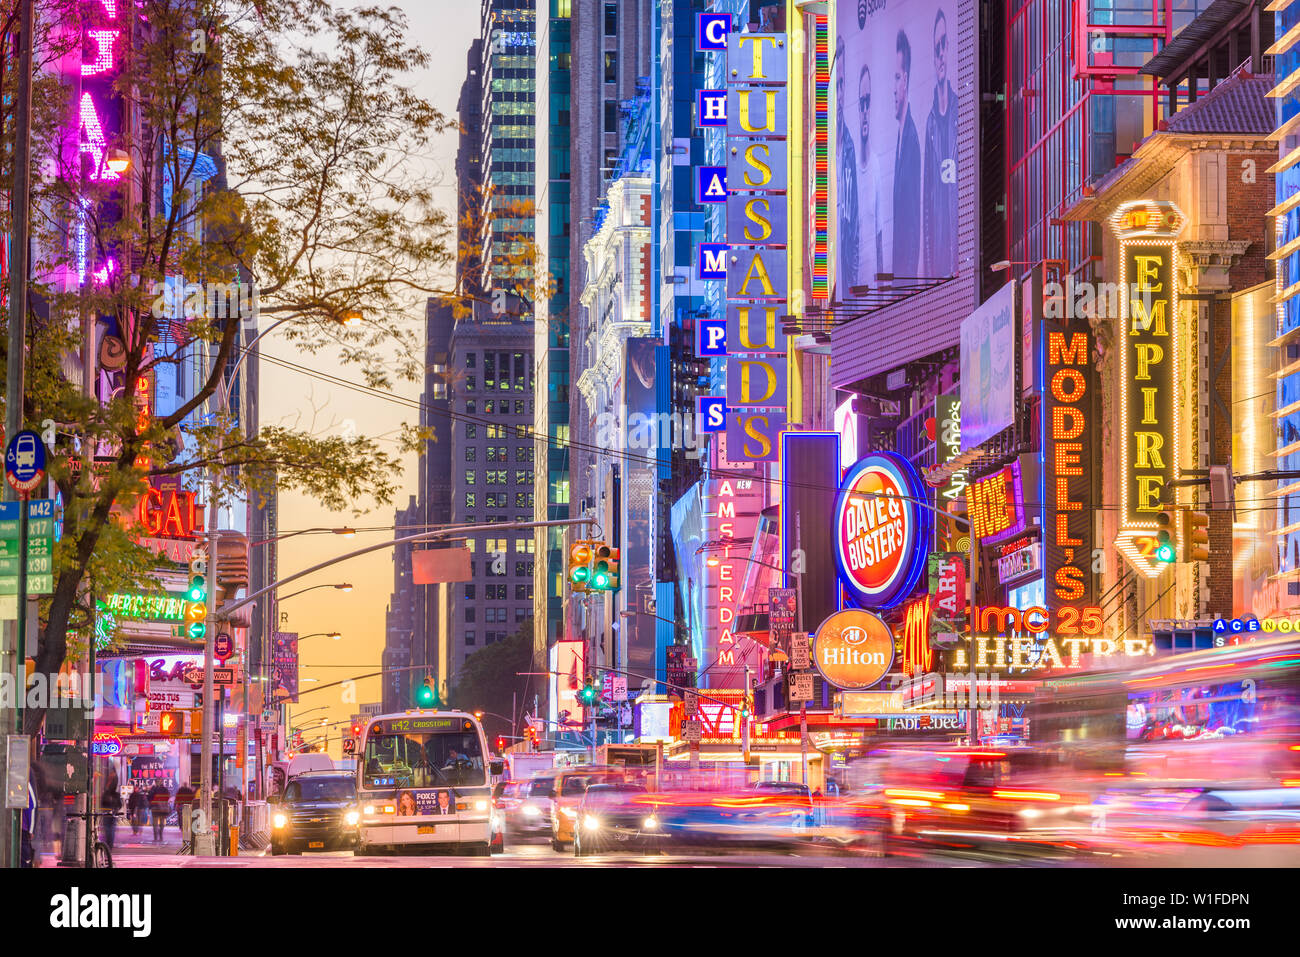 NEW YORK CITY - NOVEMBER 14, 2016: Traffic moves below the illuminated signs of 42nd Street. The landmark street is home to numerous theaters, stores, Stock Photo